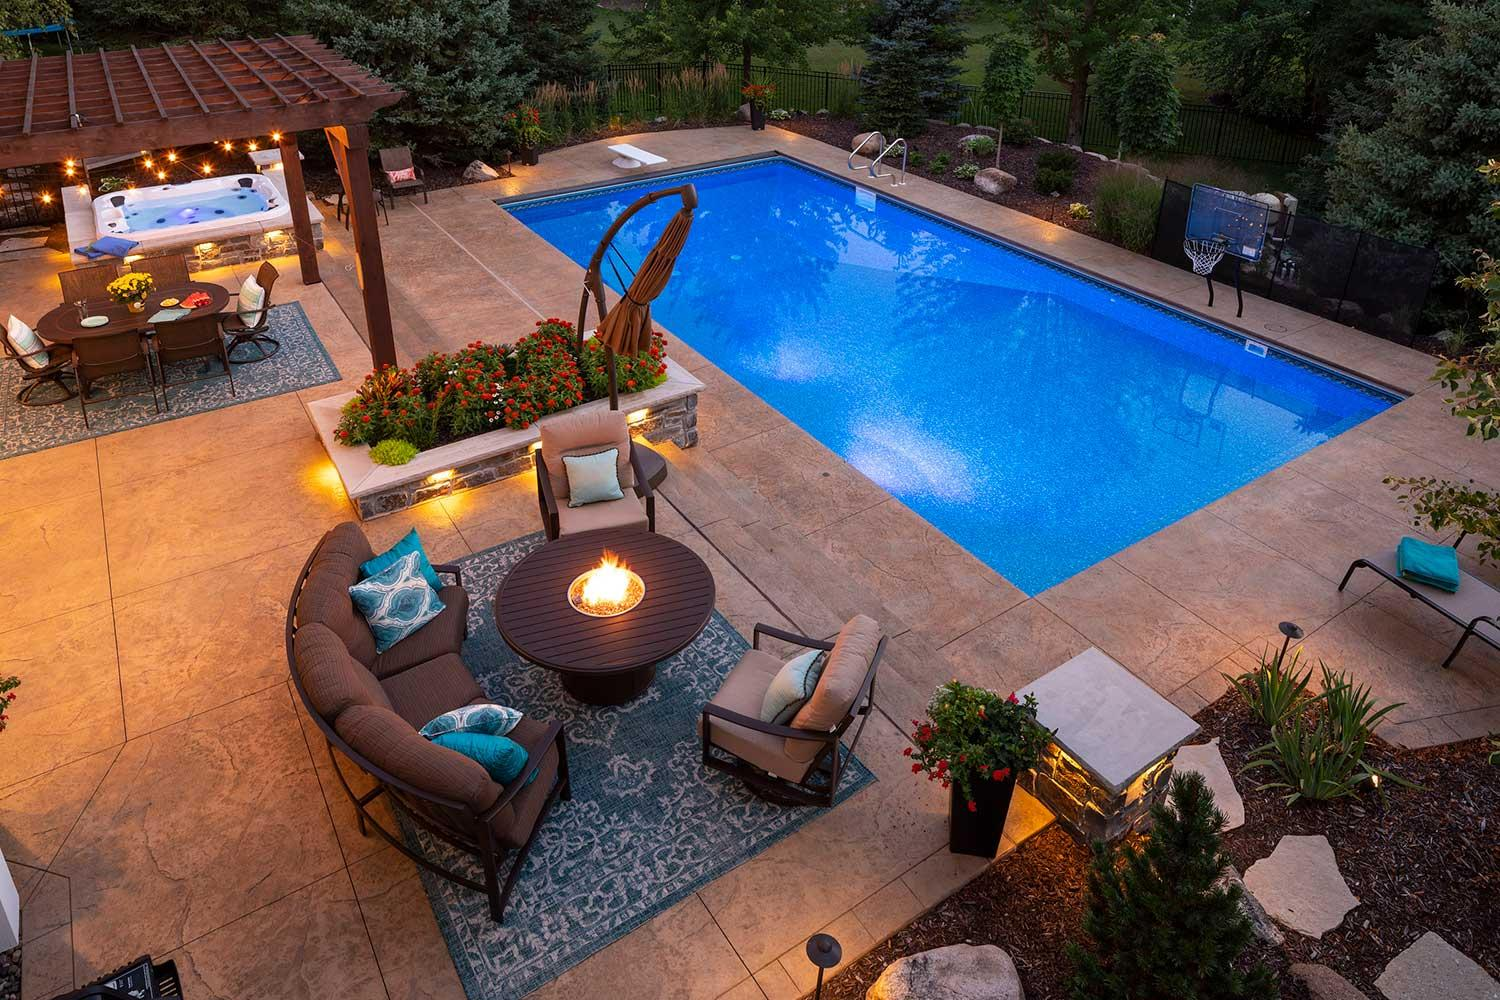 Backyard fire pit and pool